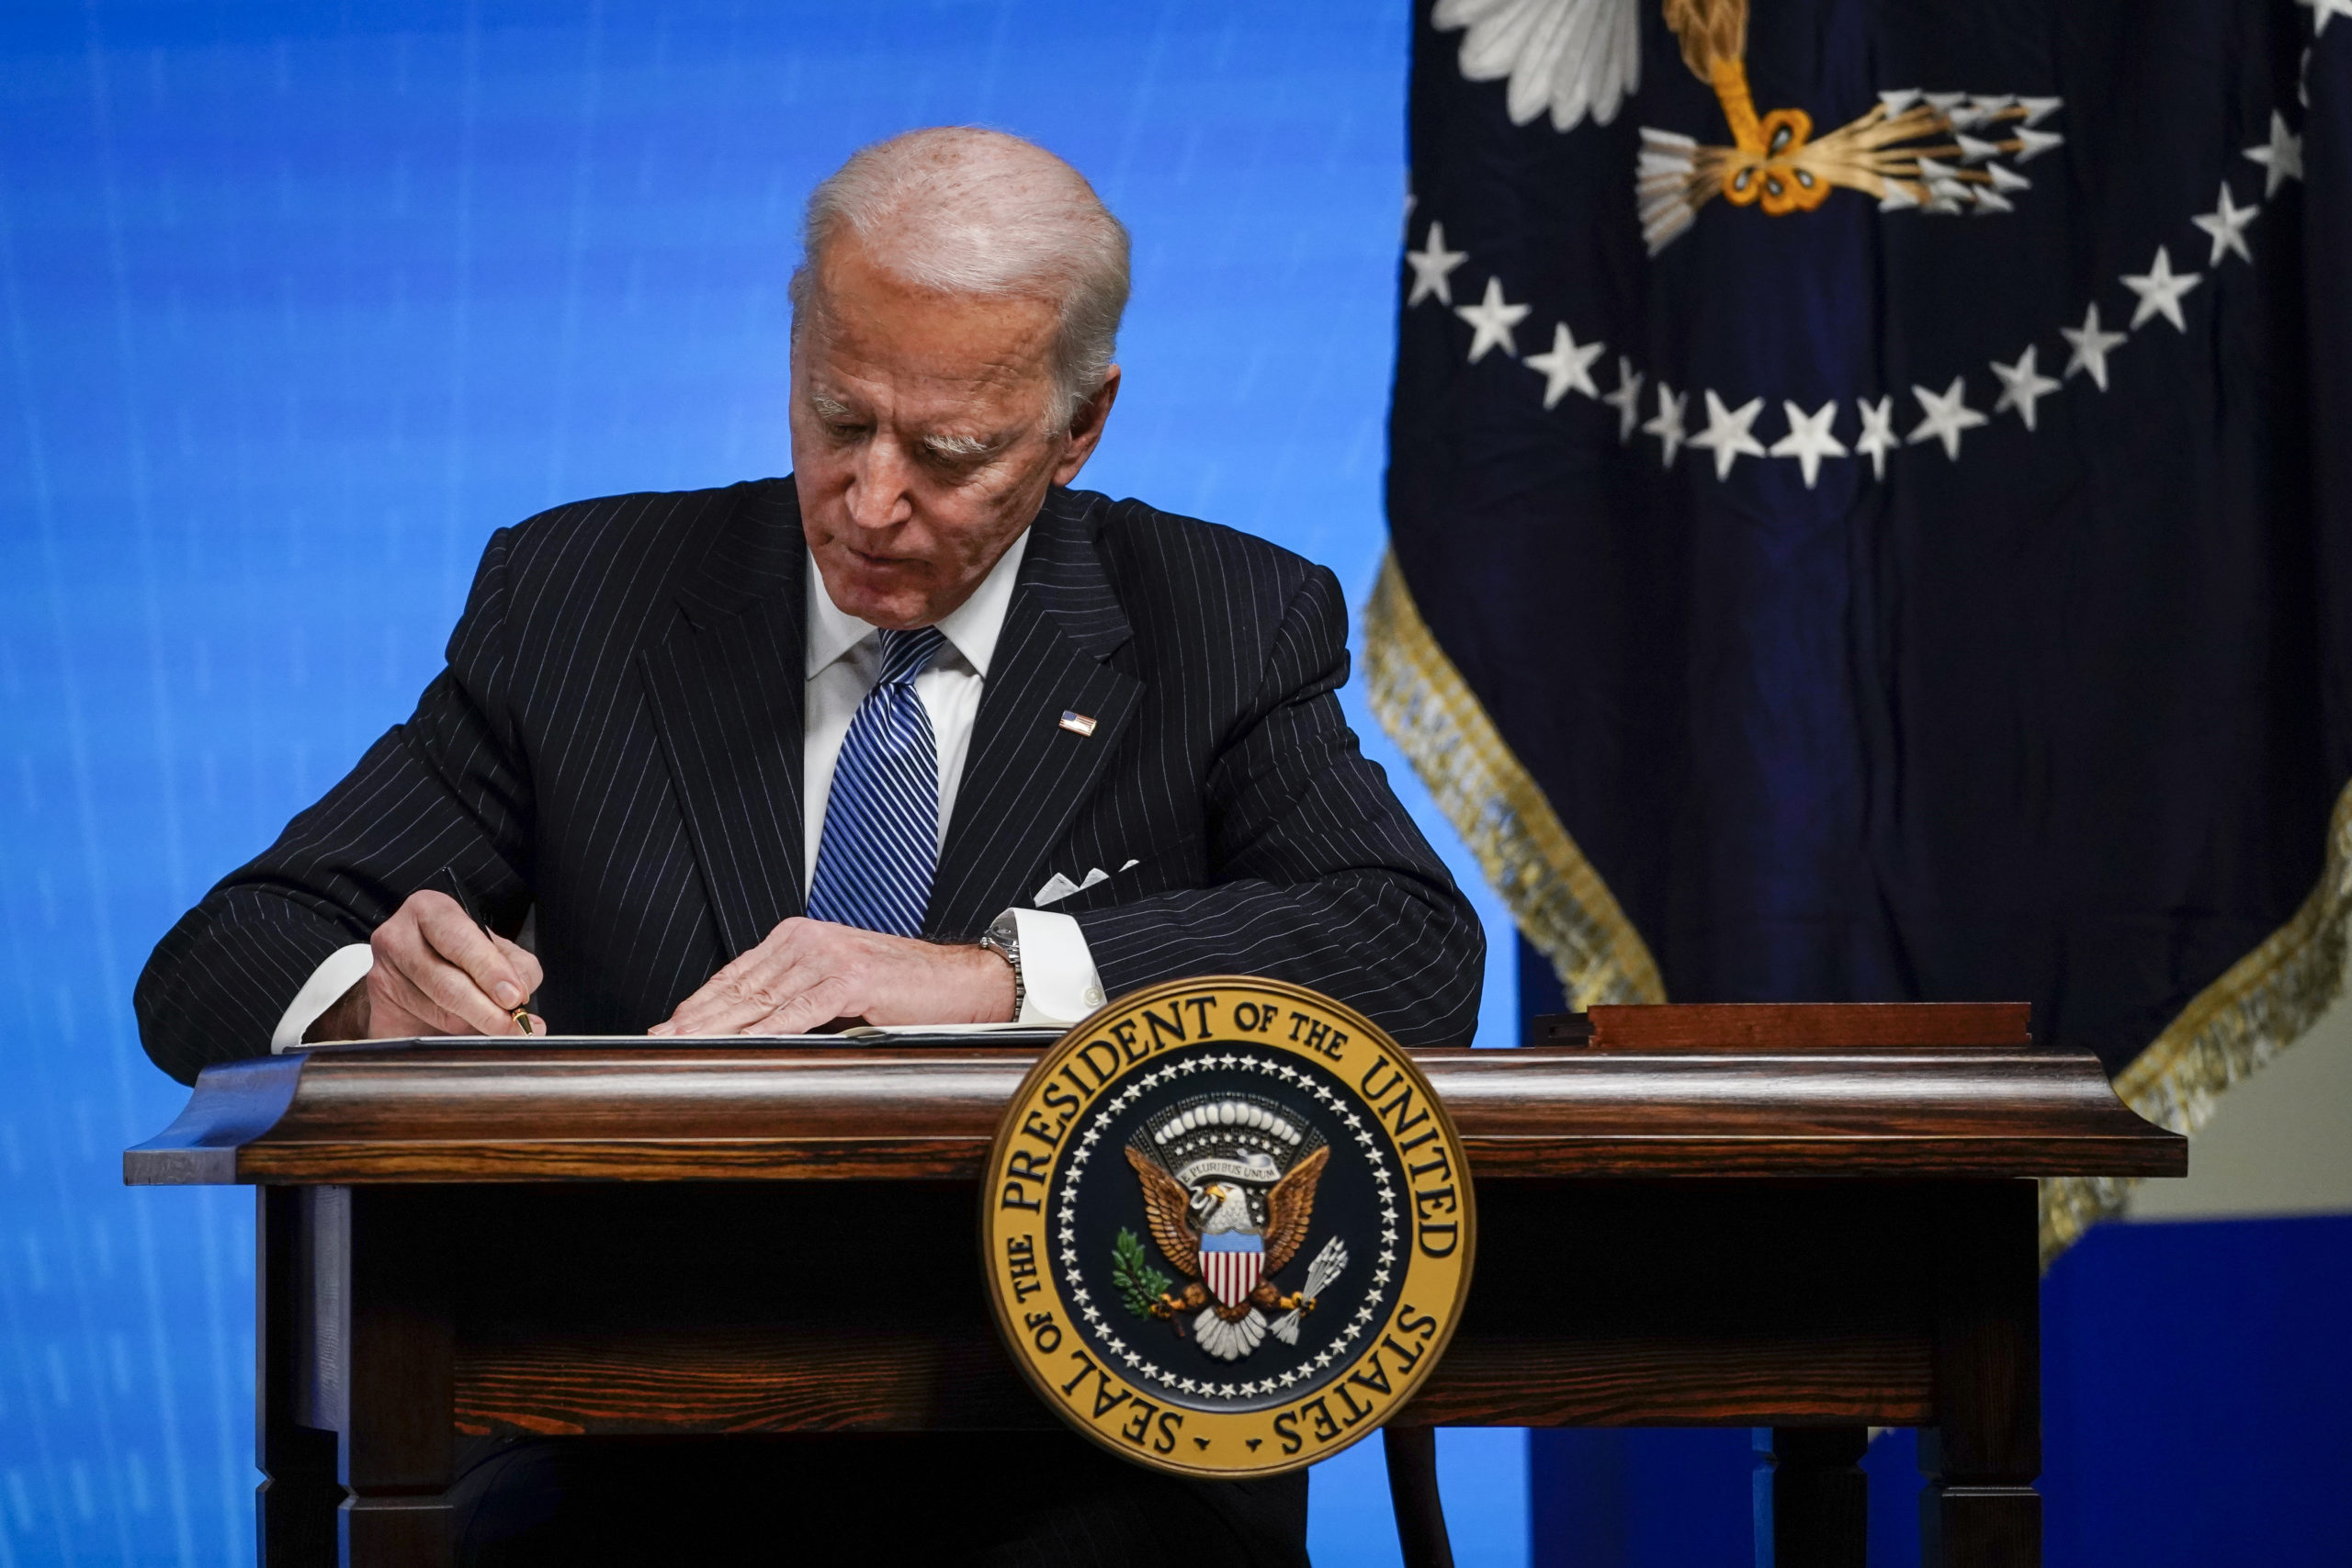 President Joe Biden signs an executive order at the White House on Jan. 25. (Drew Angerer/Getty Images)